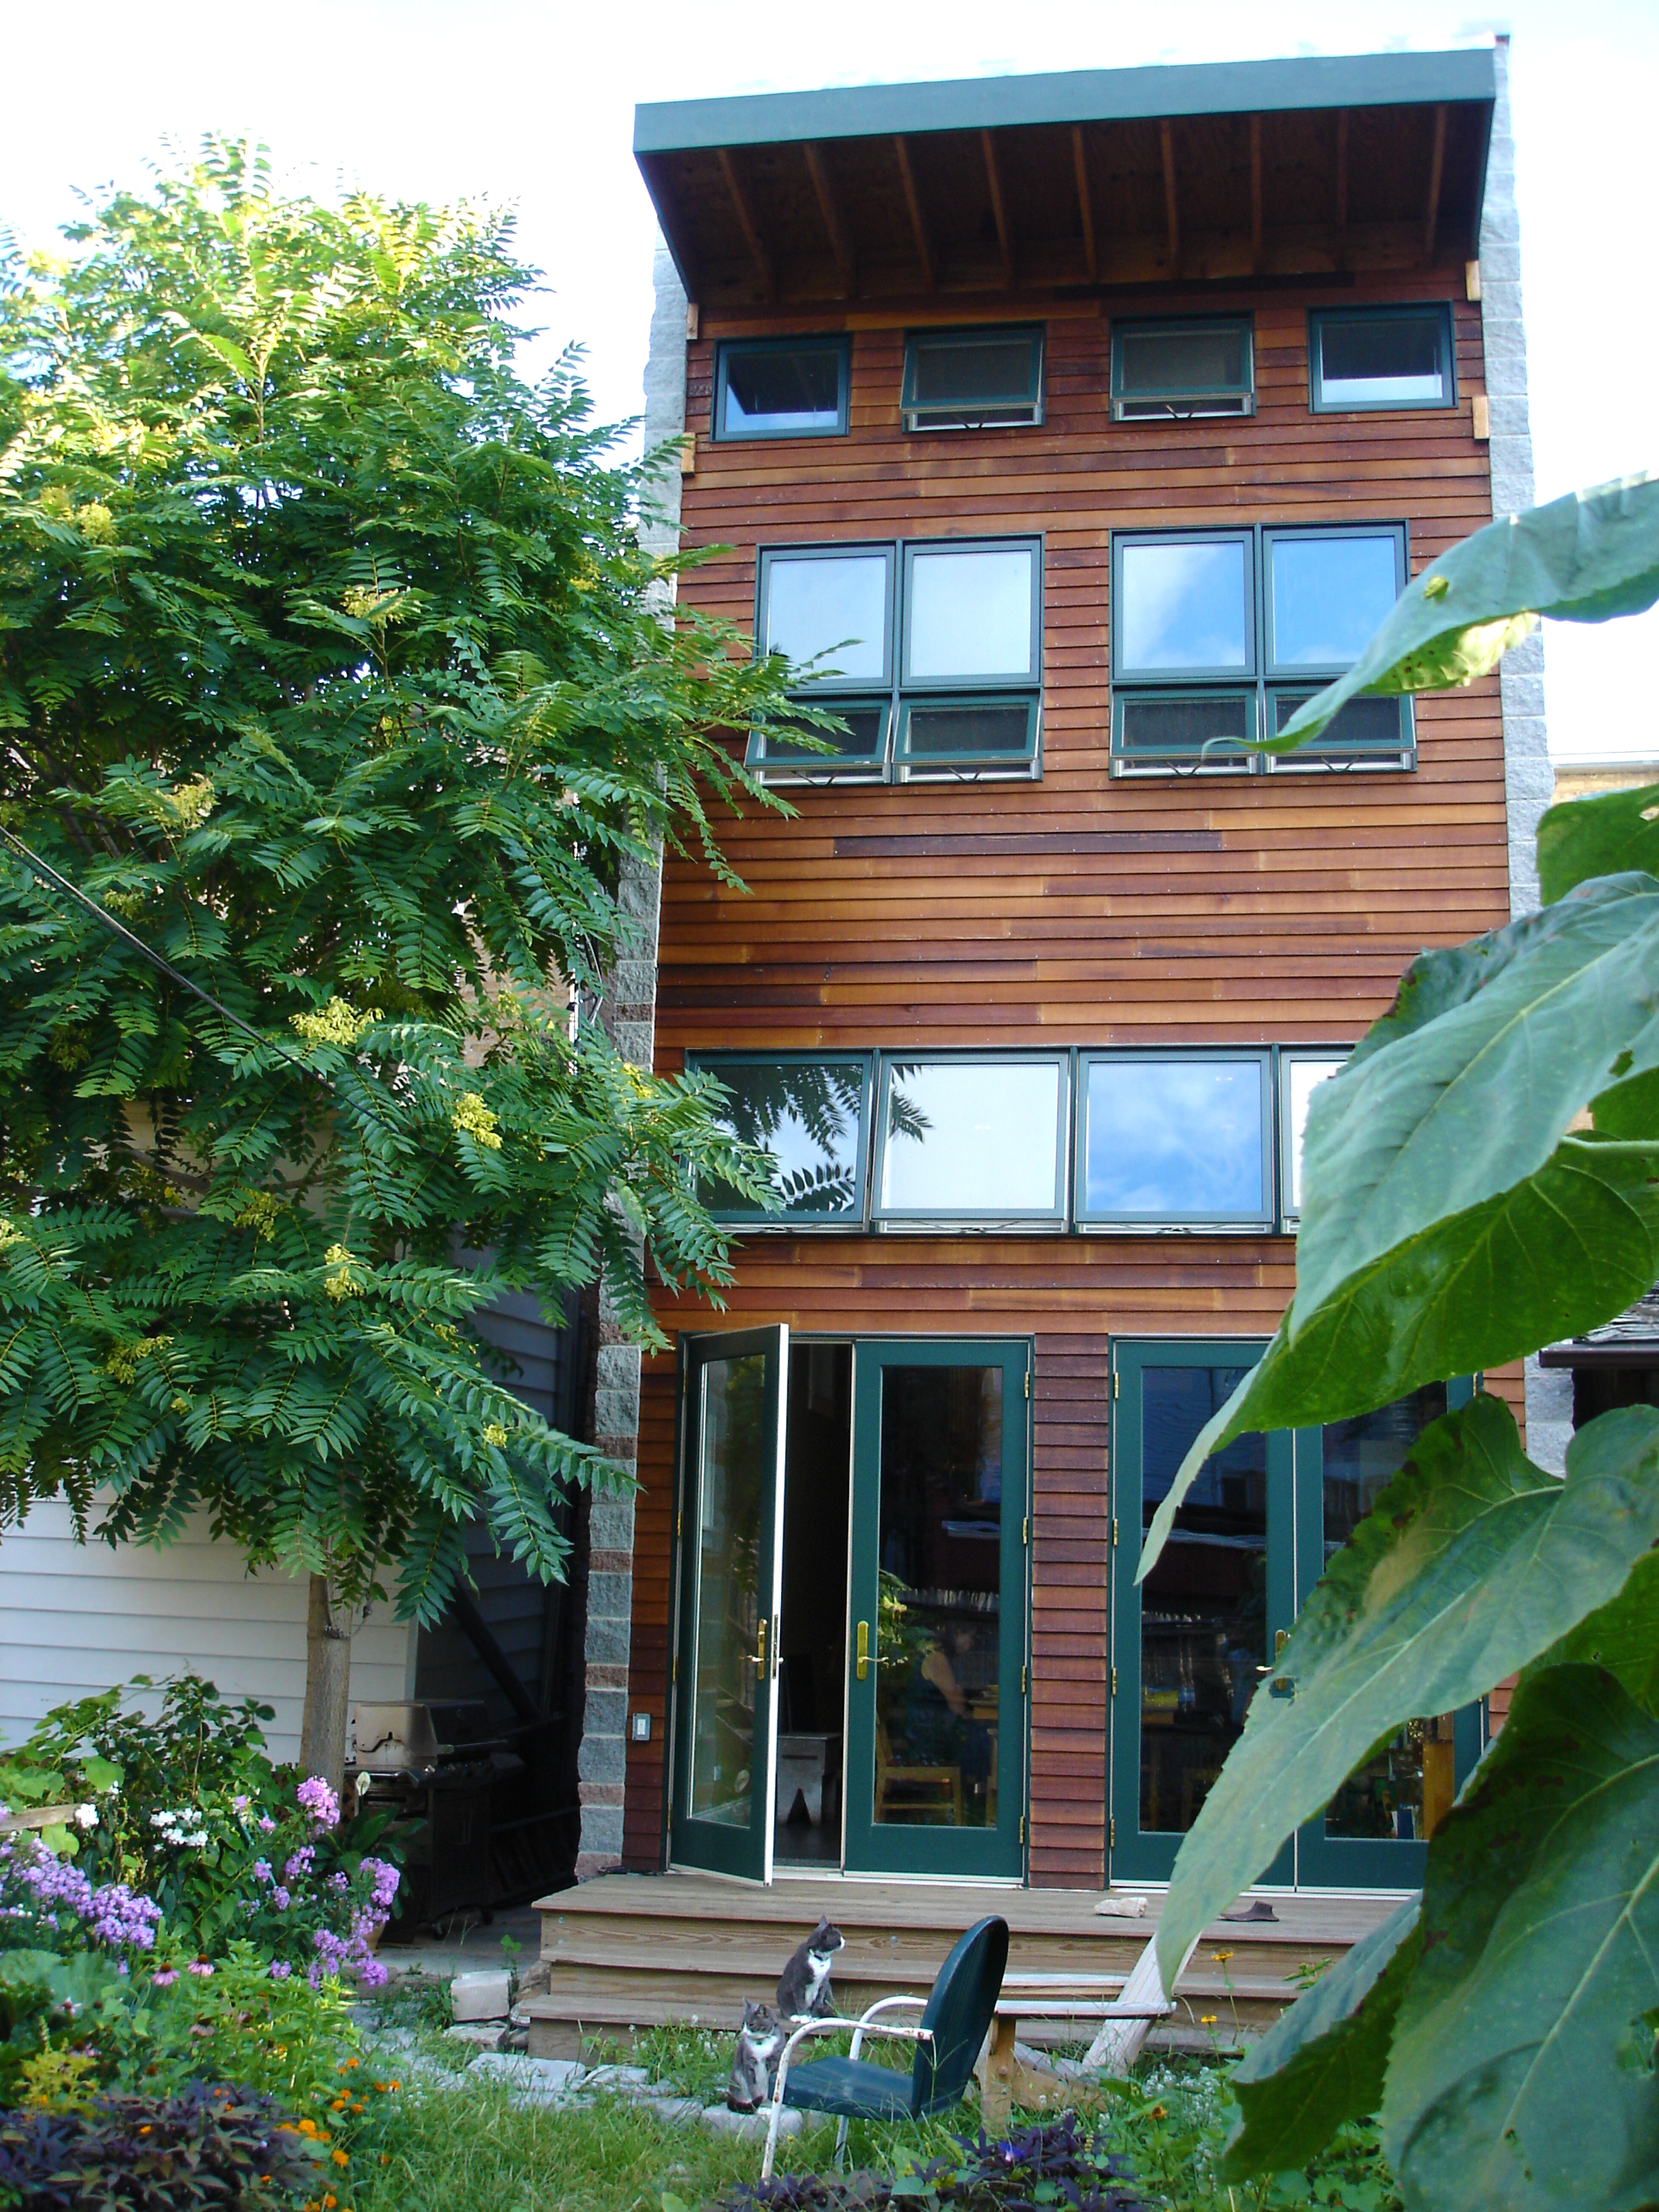 modern addition on 1890s single-family brick rowhouse, french doors open to garden